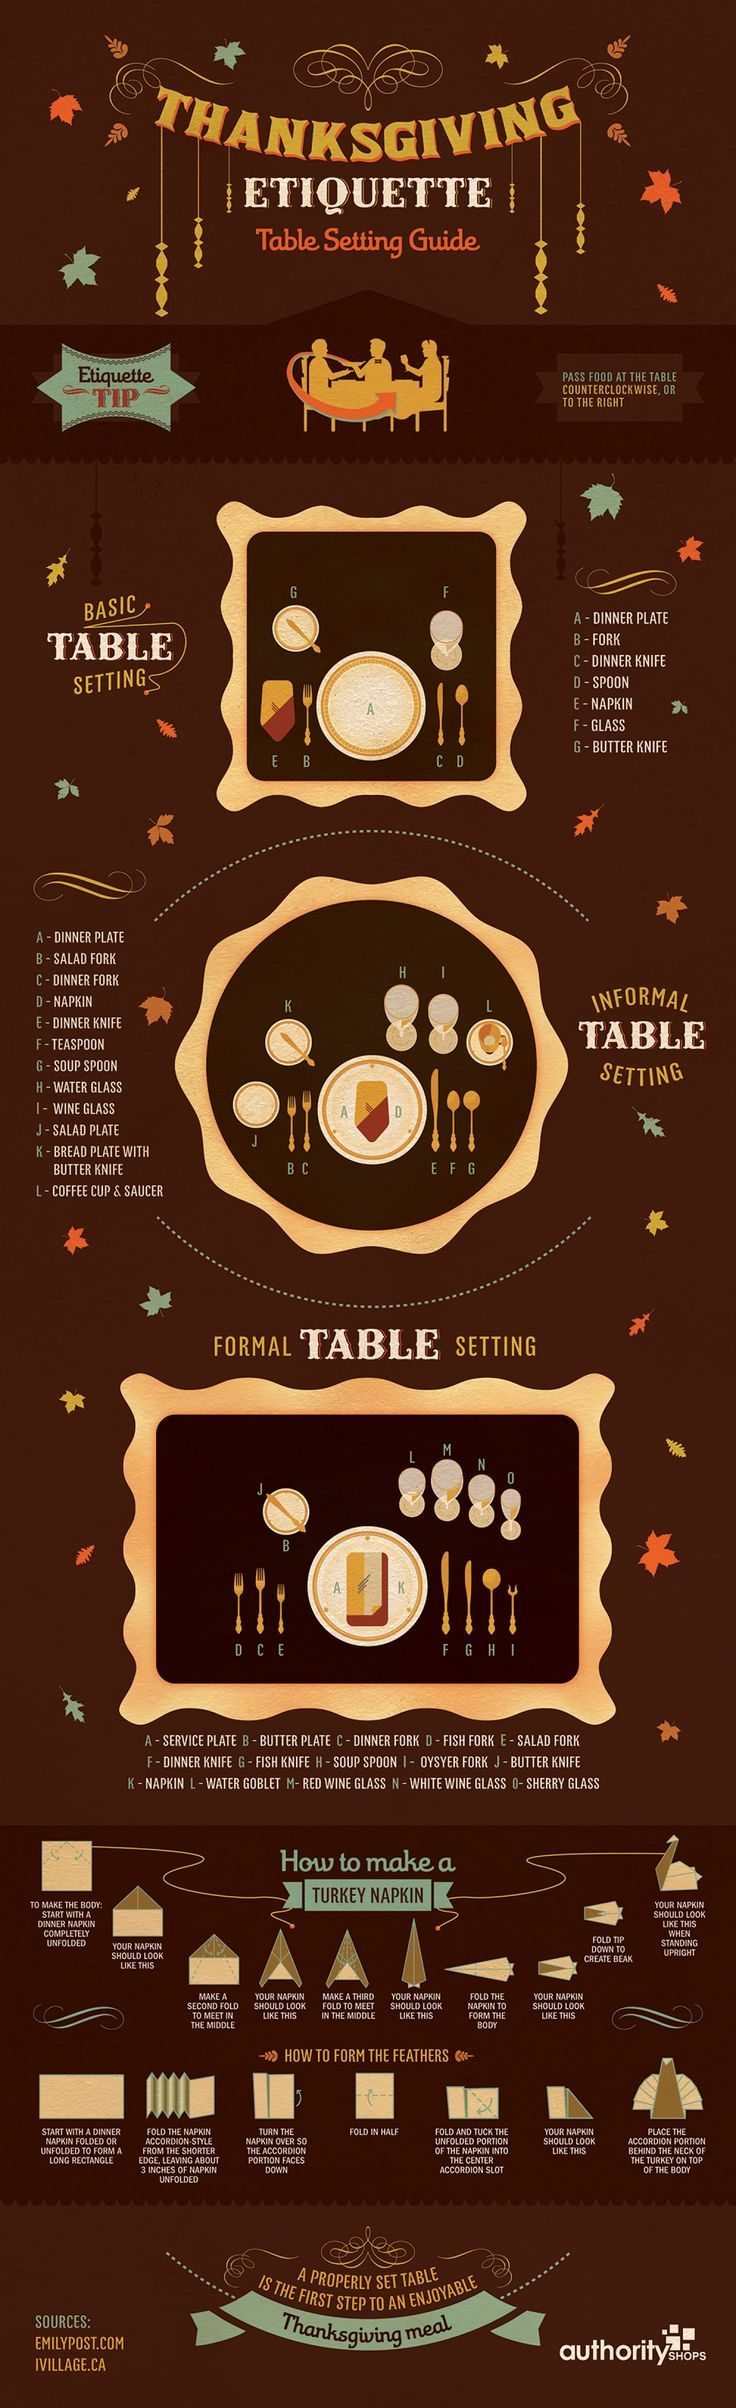 Thanksgiving Etiquette - 25 Beautiful Fall TableSettings - Style Estate -